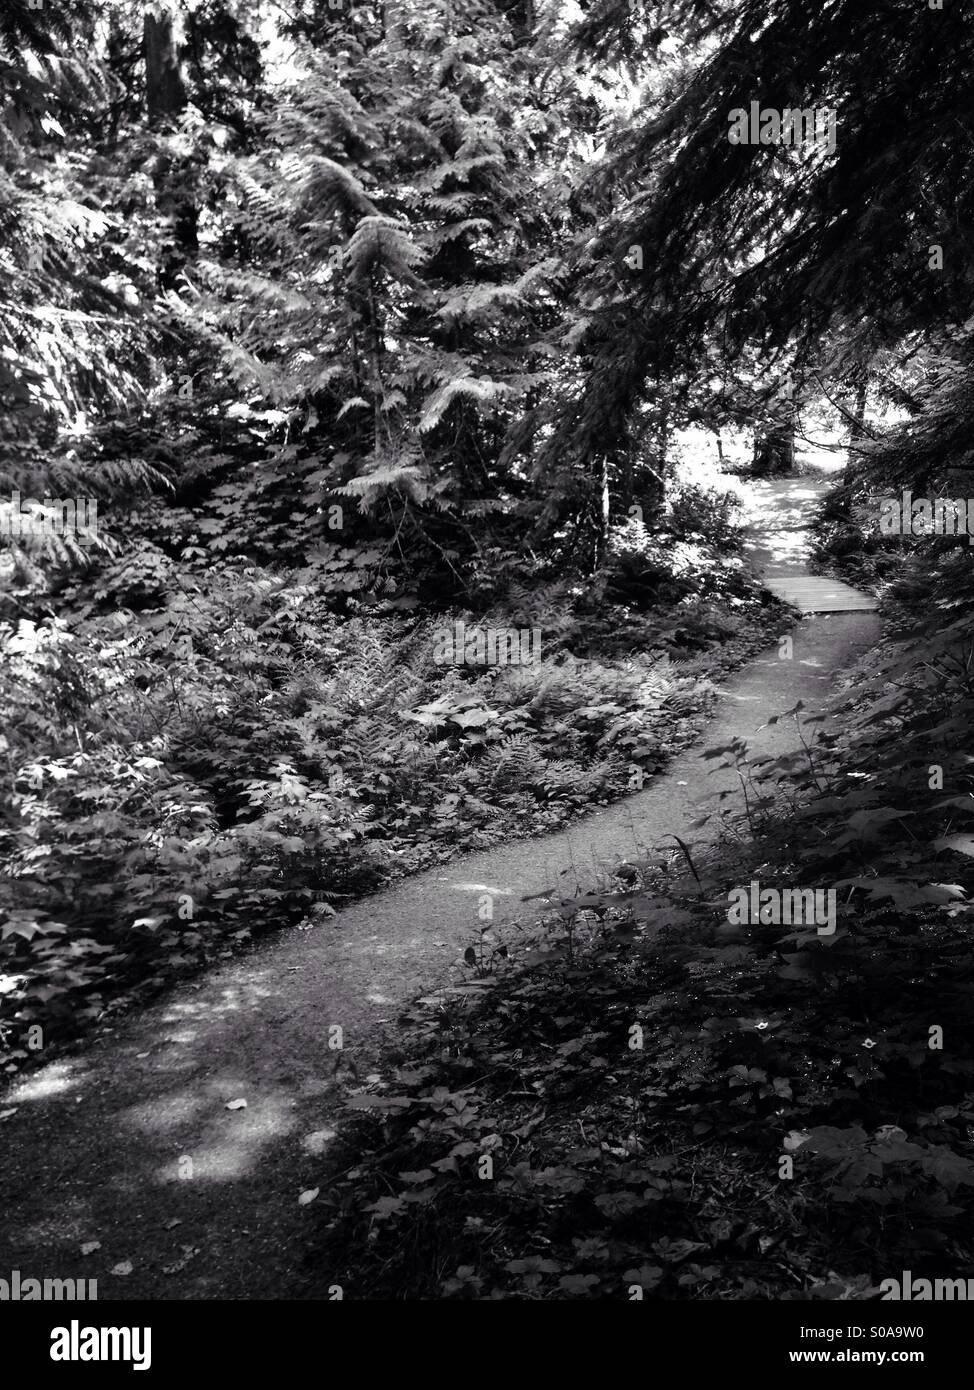 Path through forest in black and white - Stock Image